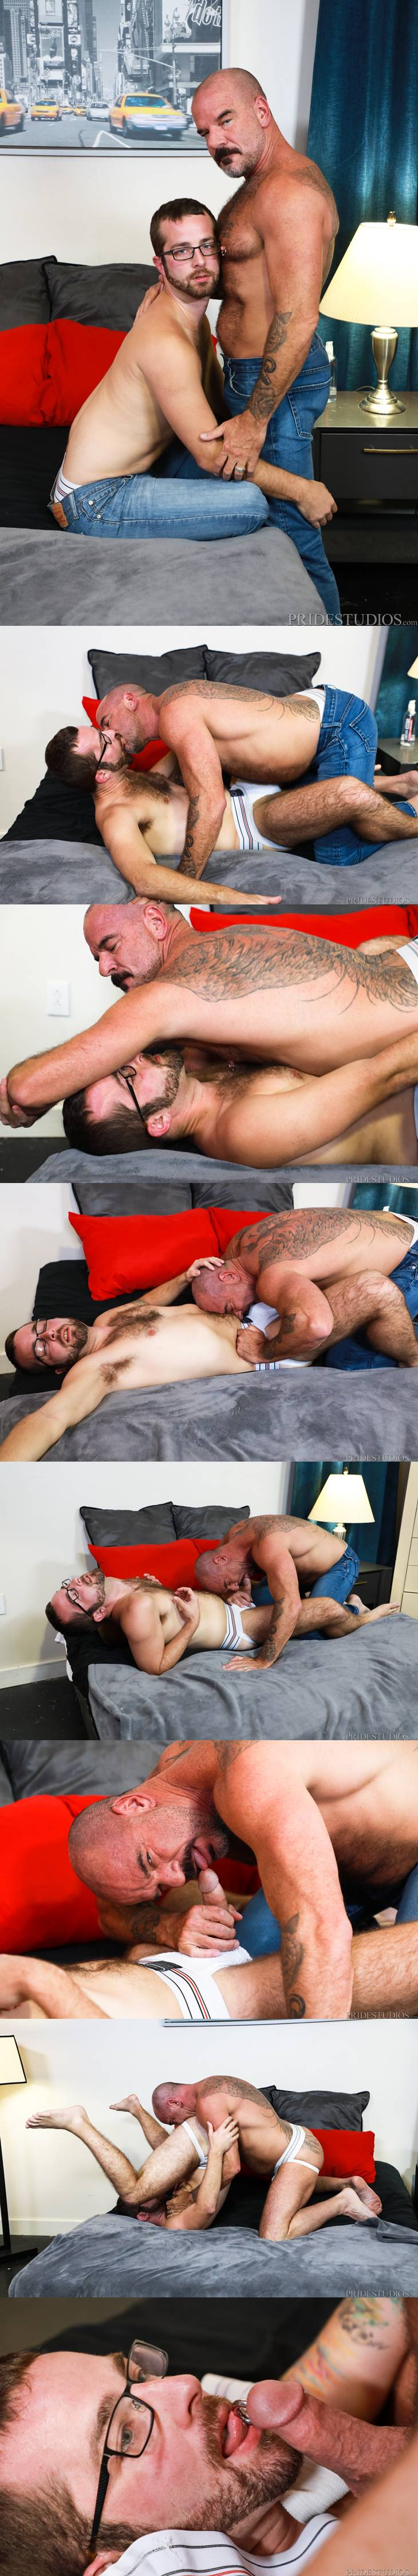 Jay Donahue & Jack Dyer for Pride Studios